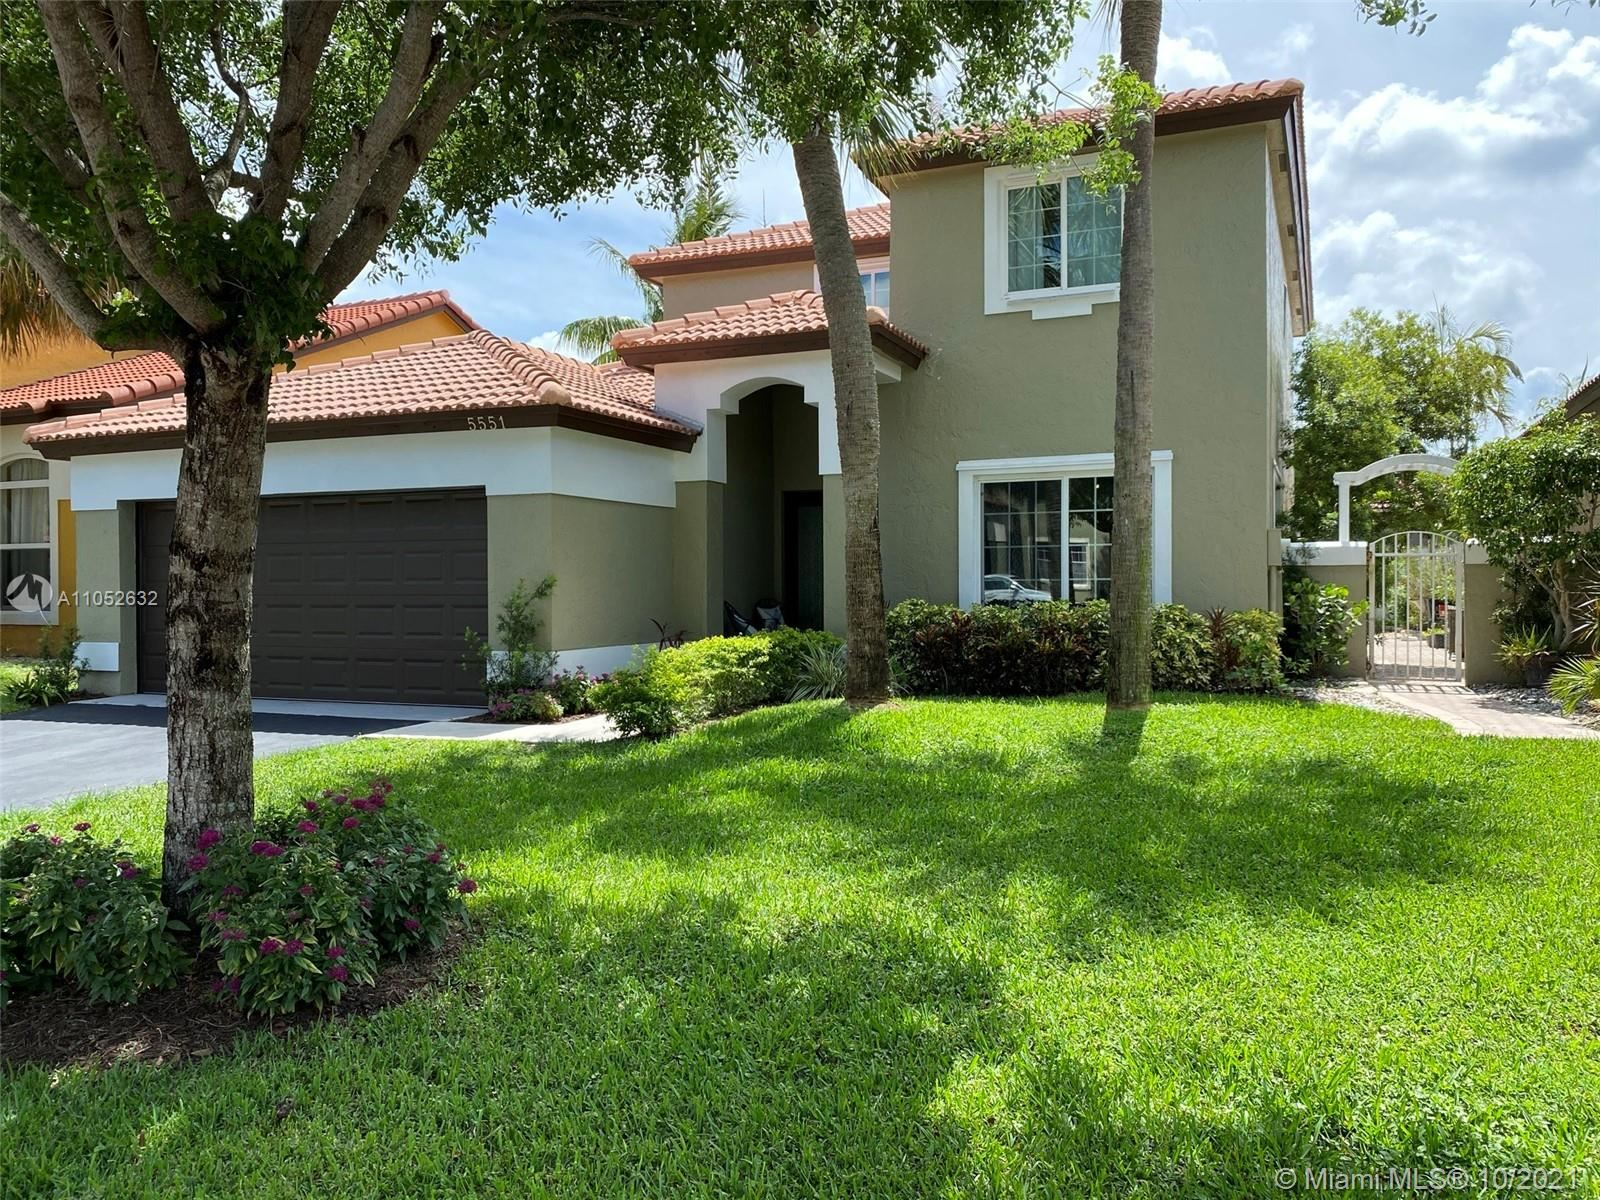 5551 NW 50th Ave, Coconut Creek, FL 33073 - #: A11052632